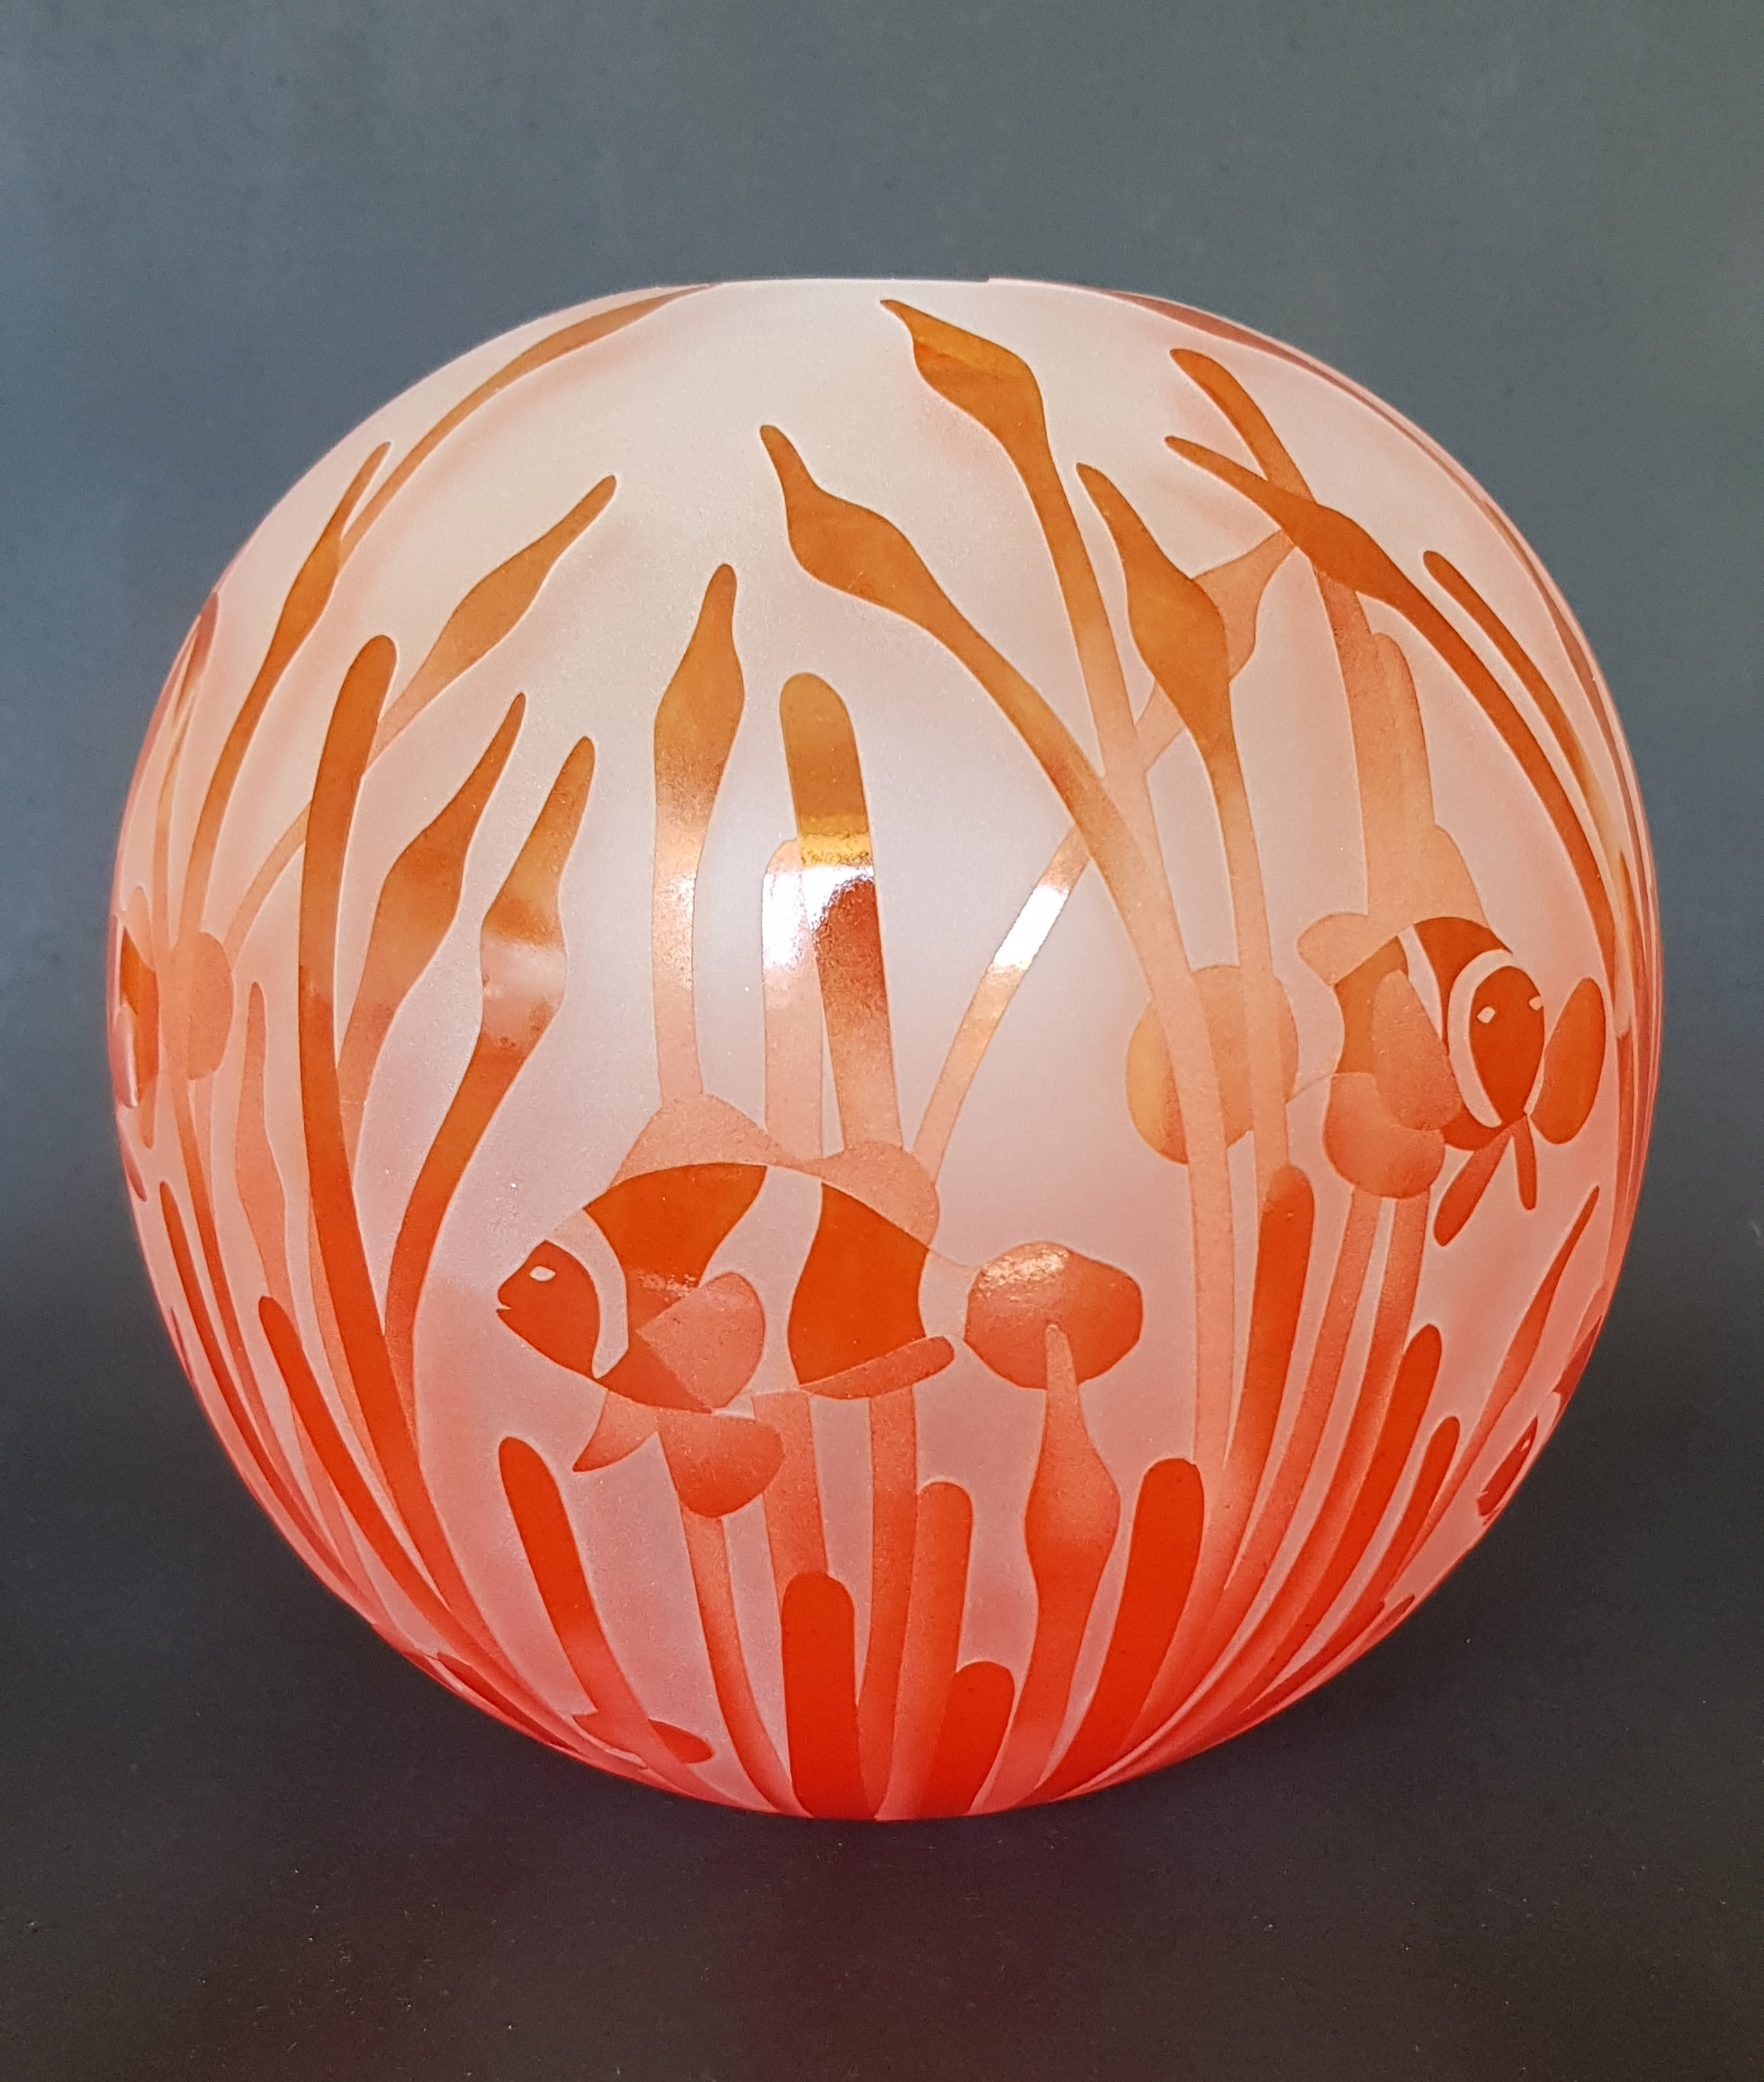 Clownfish sphere by Amanda Louden